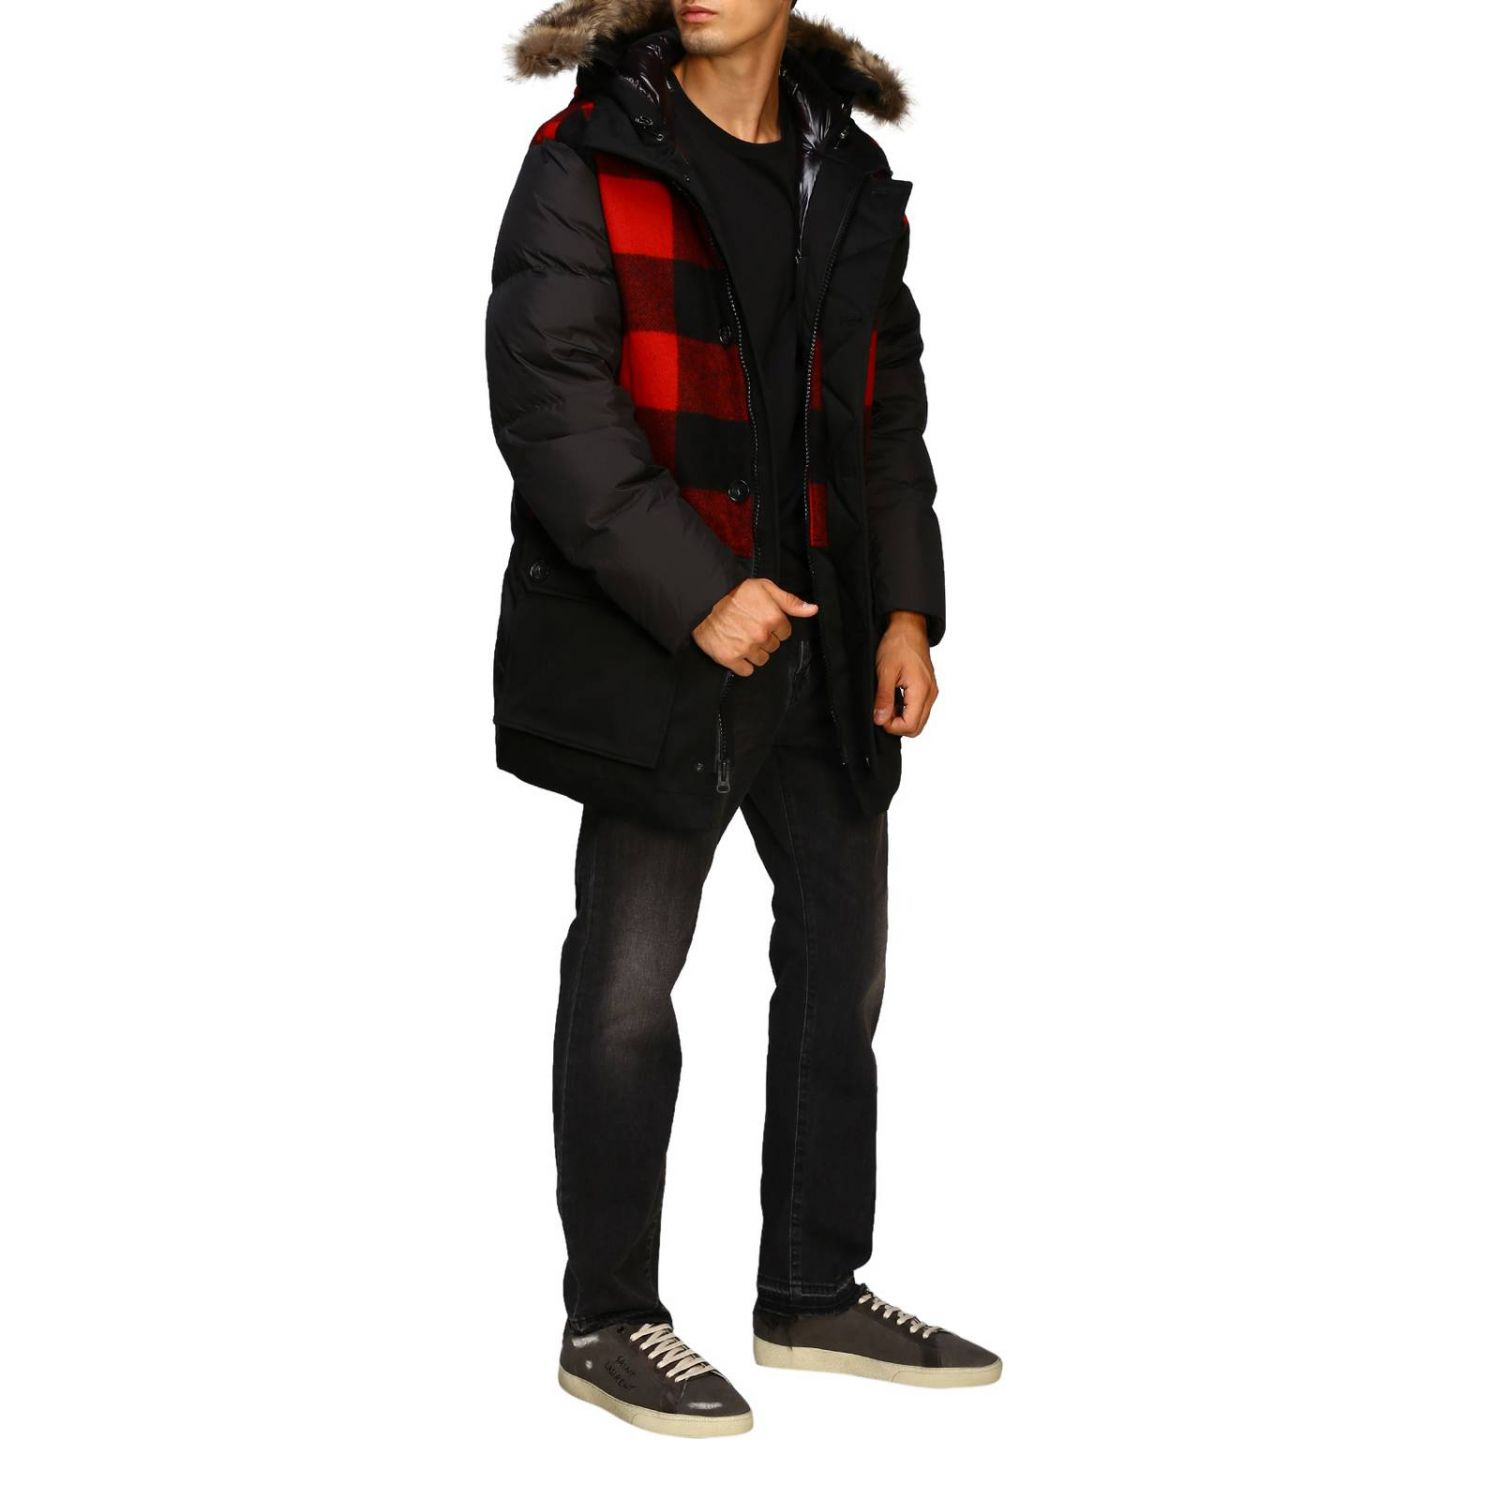 Giacca Woolrich: Giacca uomo Woolrich nero 2